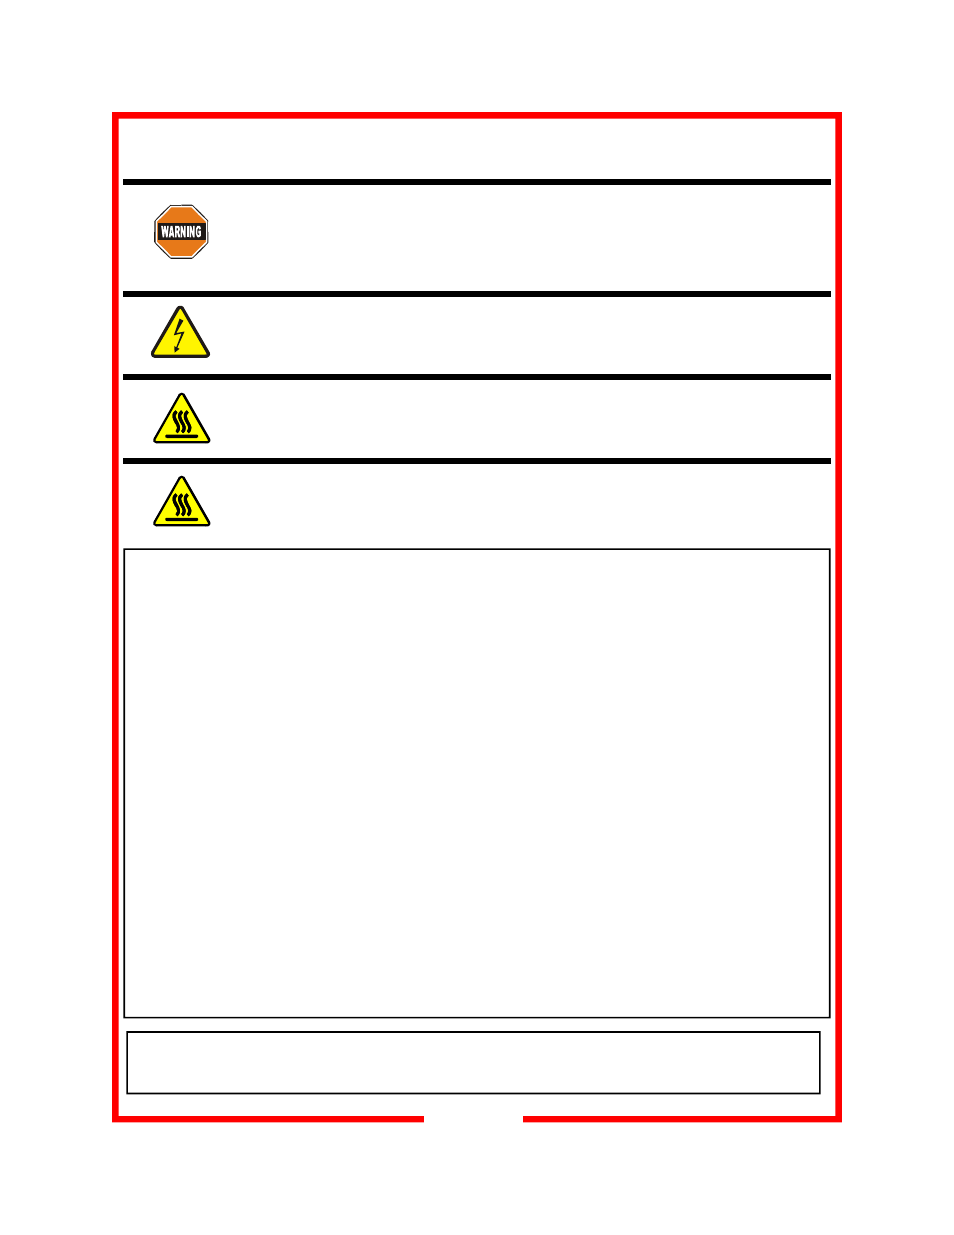 T0a06 Electrical Shock Protection Manual Guide